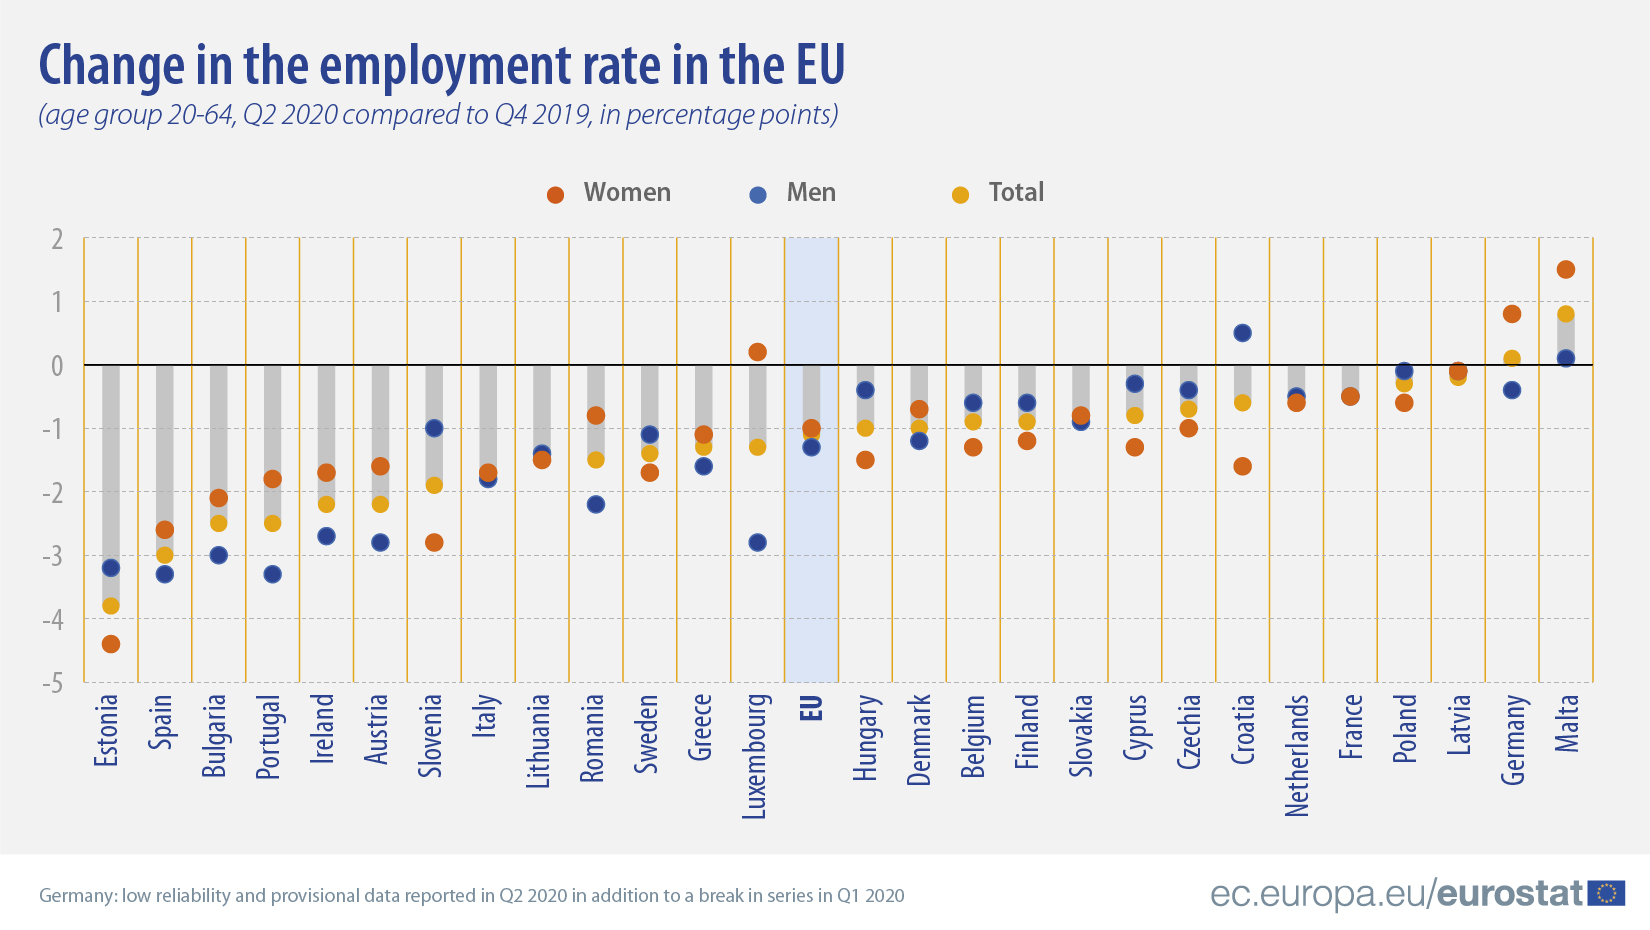 Change in the employment rate in the EU